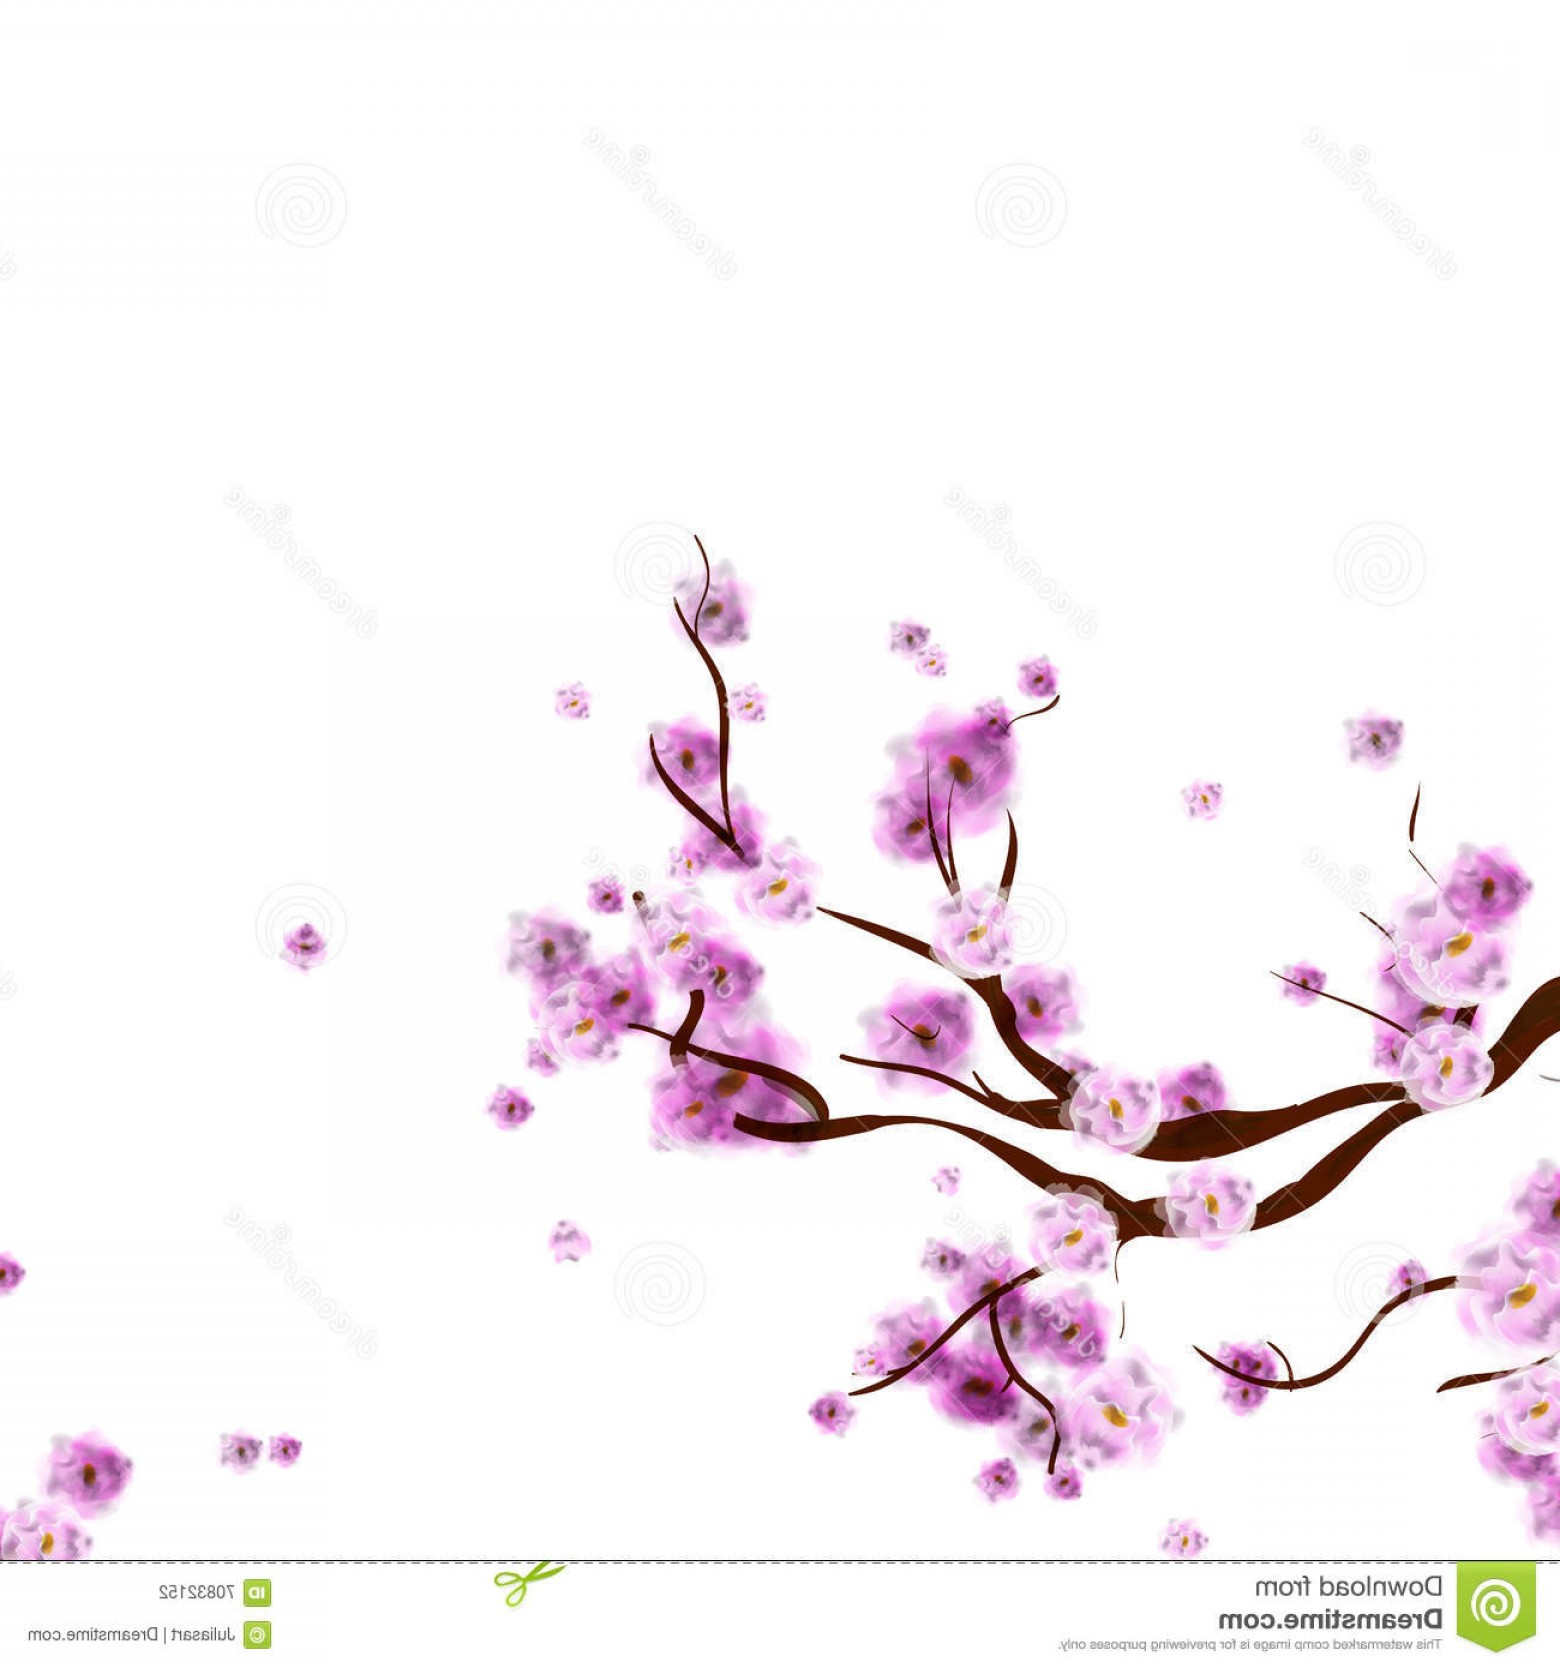 Tree Branch Vector Background: Stock Illustration Watercolor Sakura Background Blossom Cherry Tree Branch Flowers Isolated White Hand Drawn Vector Image